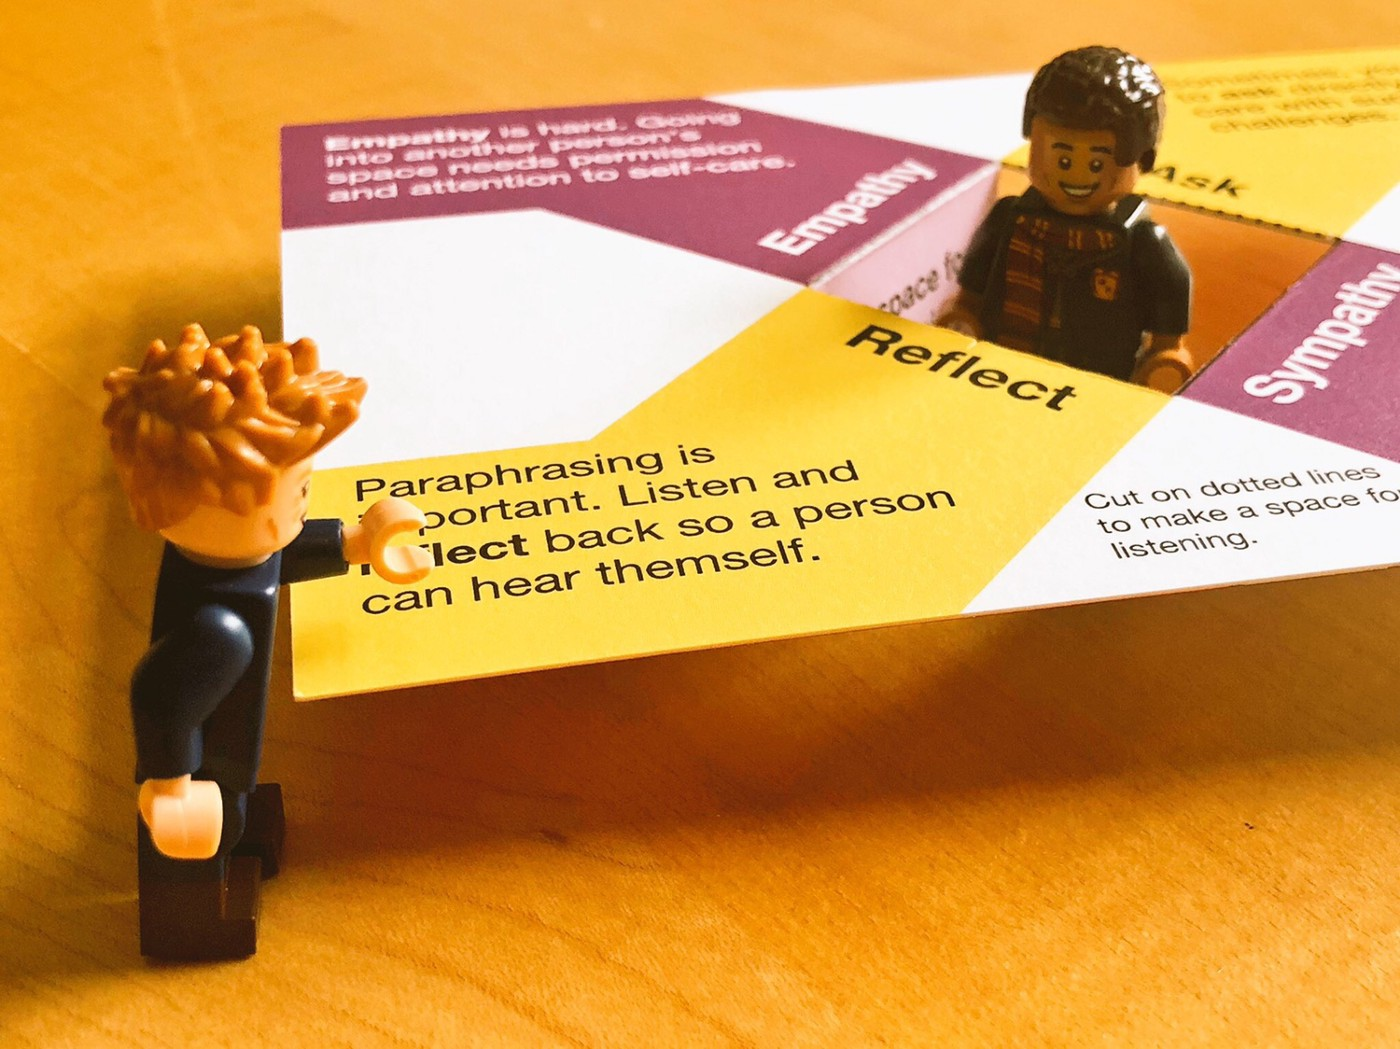 Minifig has moved to another card to point at text about paraphrasing